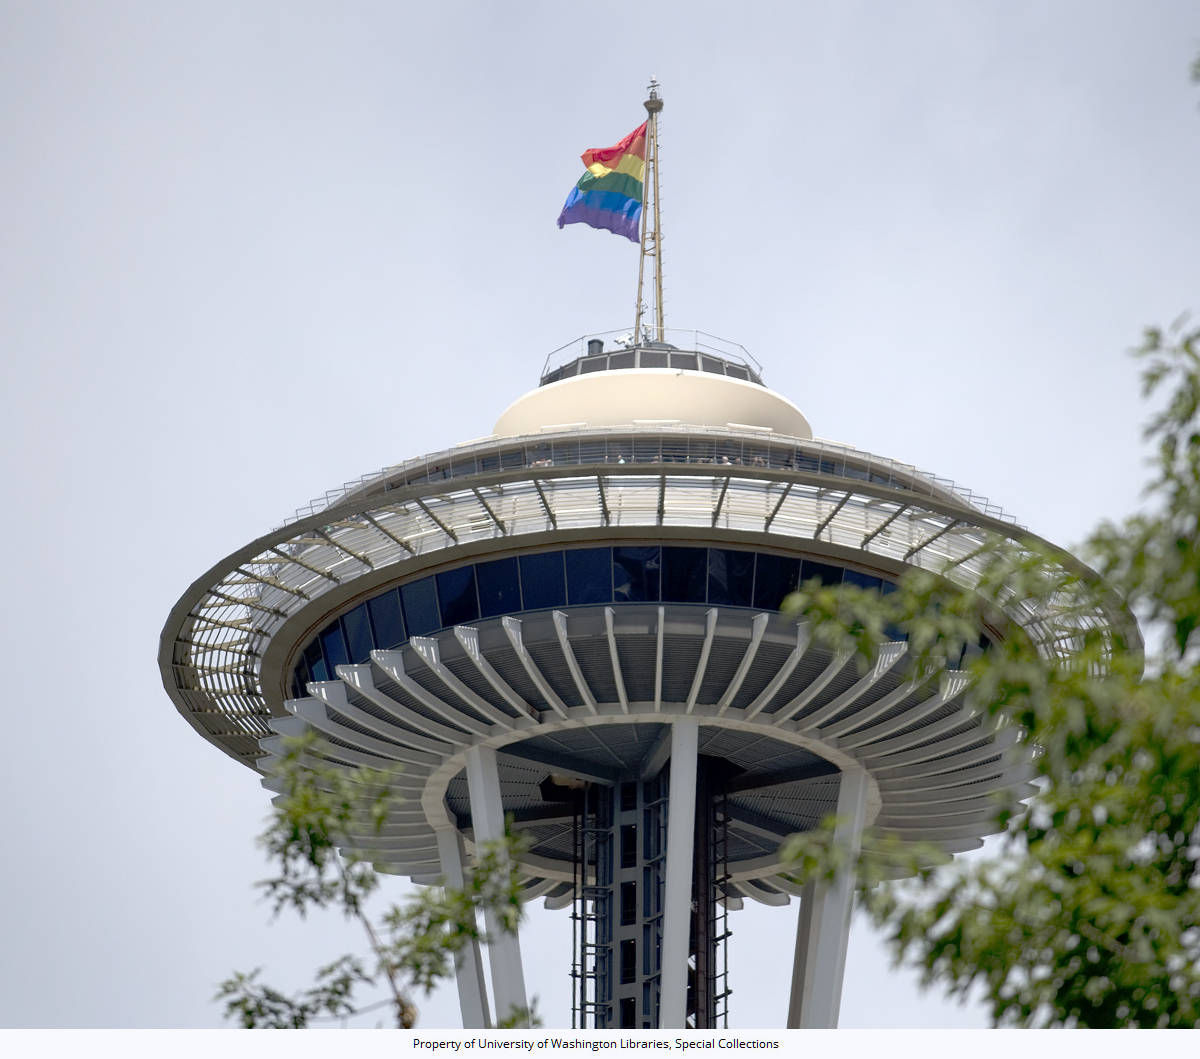 43rd Annual Pride Parade: Rainbow flag flies from the top of the Space Needle, 4th Ave. and Battery St., Seattle, Washington, June 25, 2017